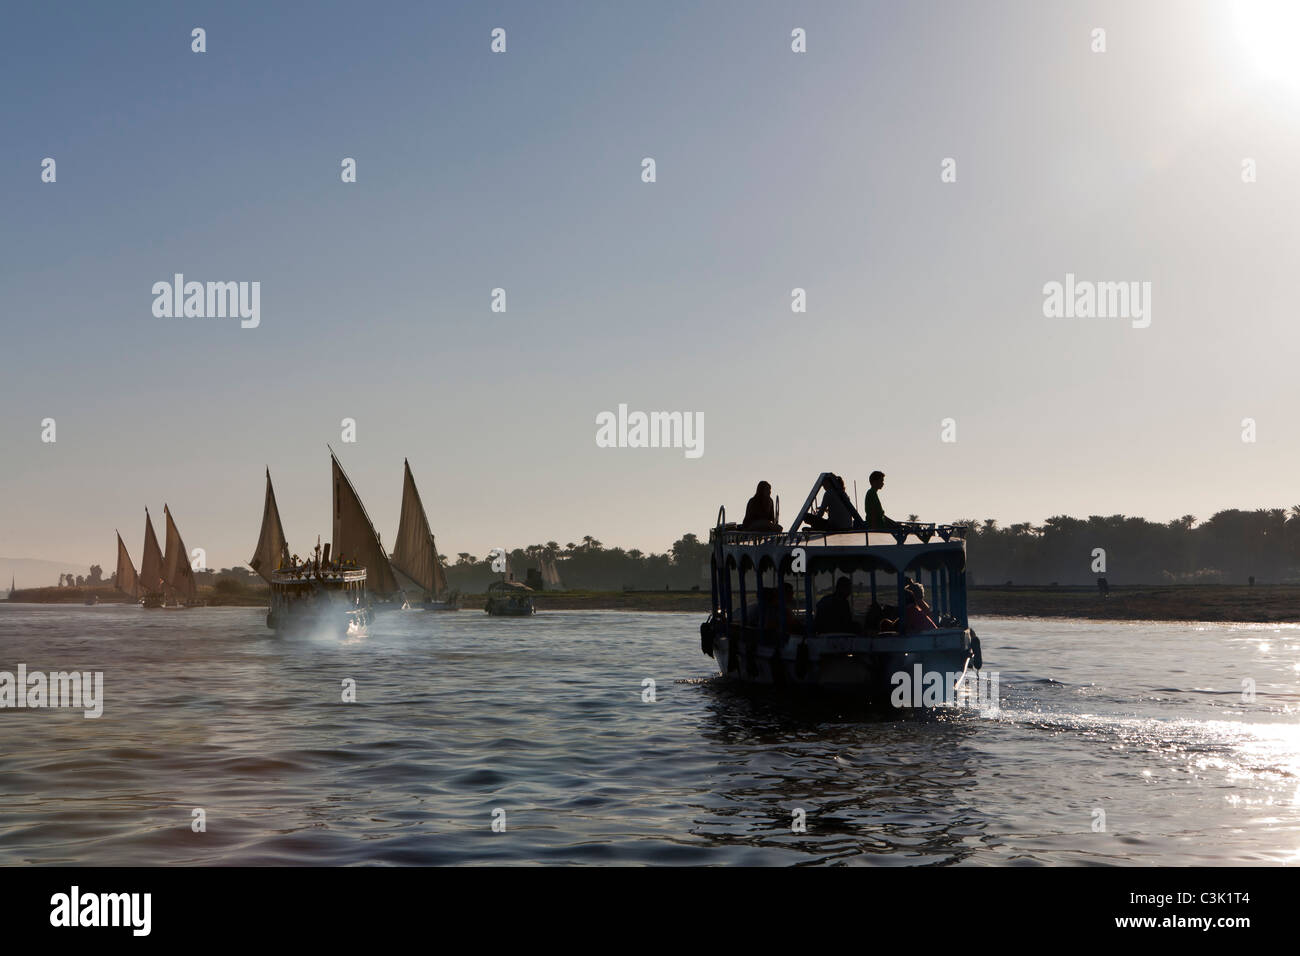 Following a Nile water taxi and several feluccas heading into the sunset on the sparkling river water, Egypt, Africa - Stock Image